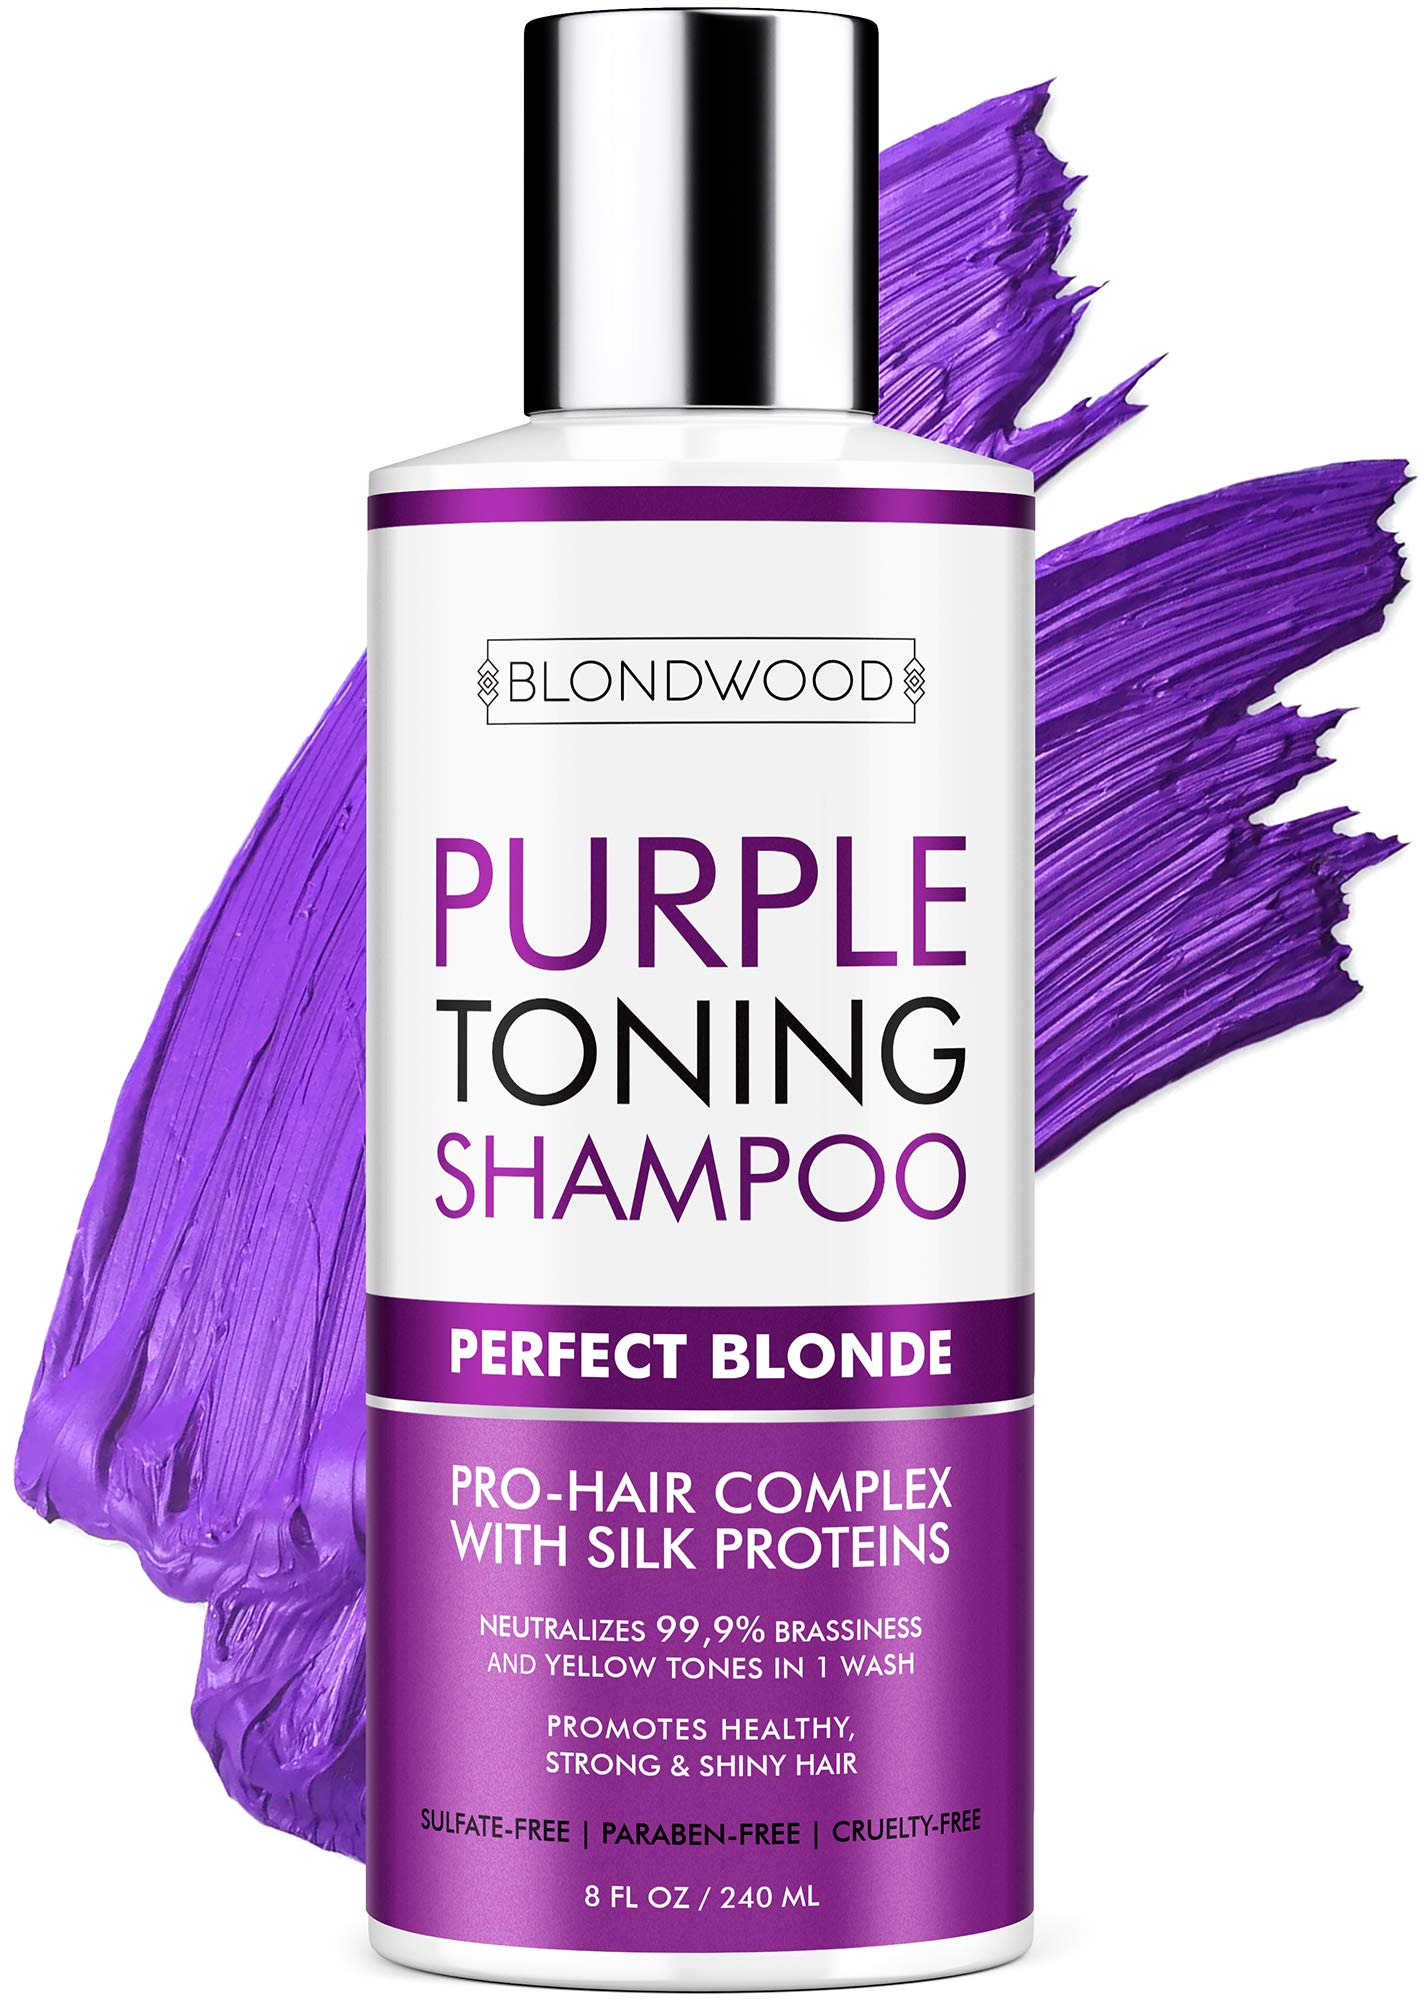 Purple Shampoo for Blonde Hair – Made in USA - Gentle Formula Toning & Hair Care - Removes Brassiness, Yellow & Overtones – Blonde Shampoo with Platinum, Ash & Overtone Purple – Cruelty-Free - 8 oz